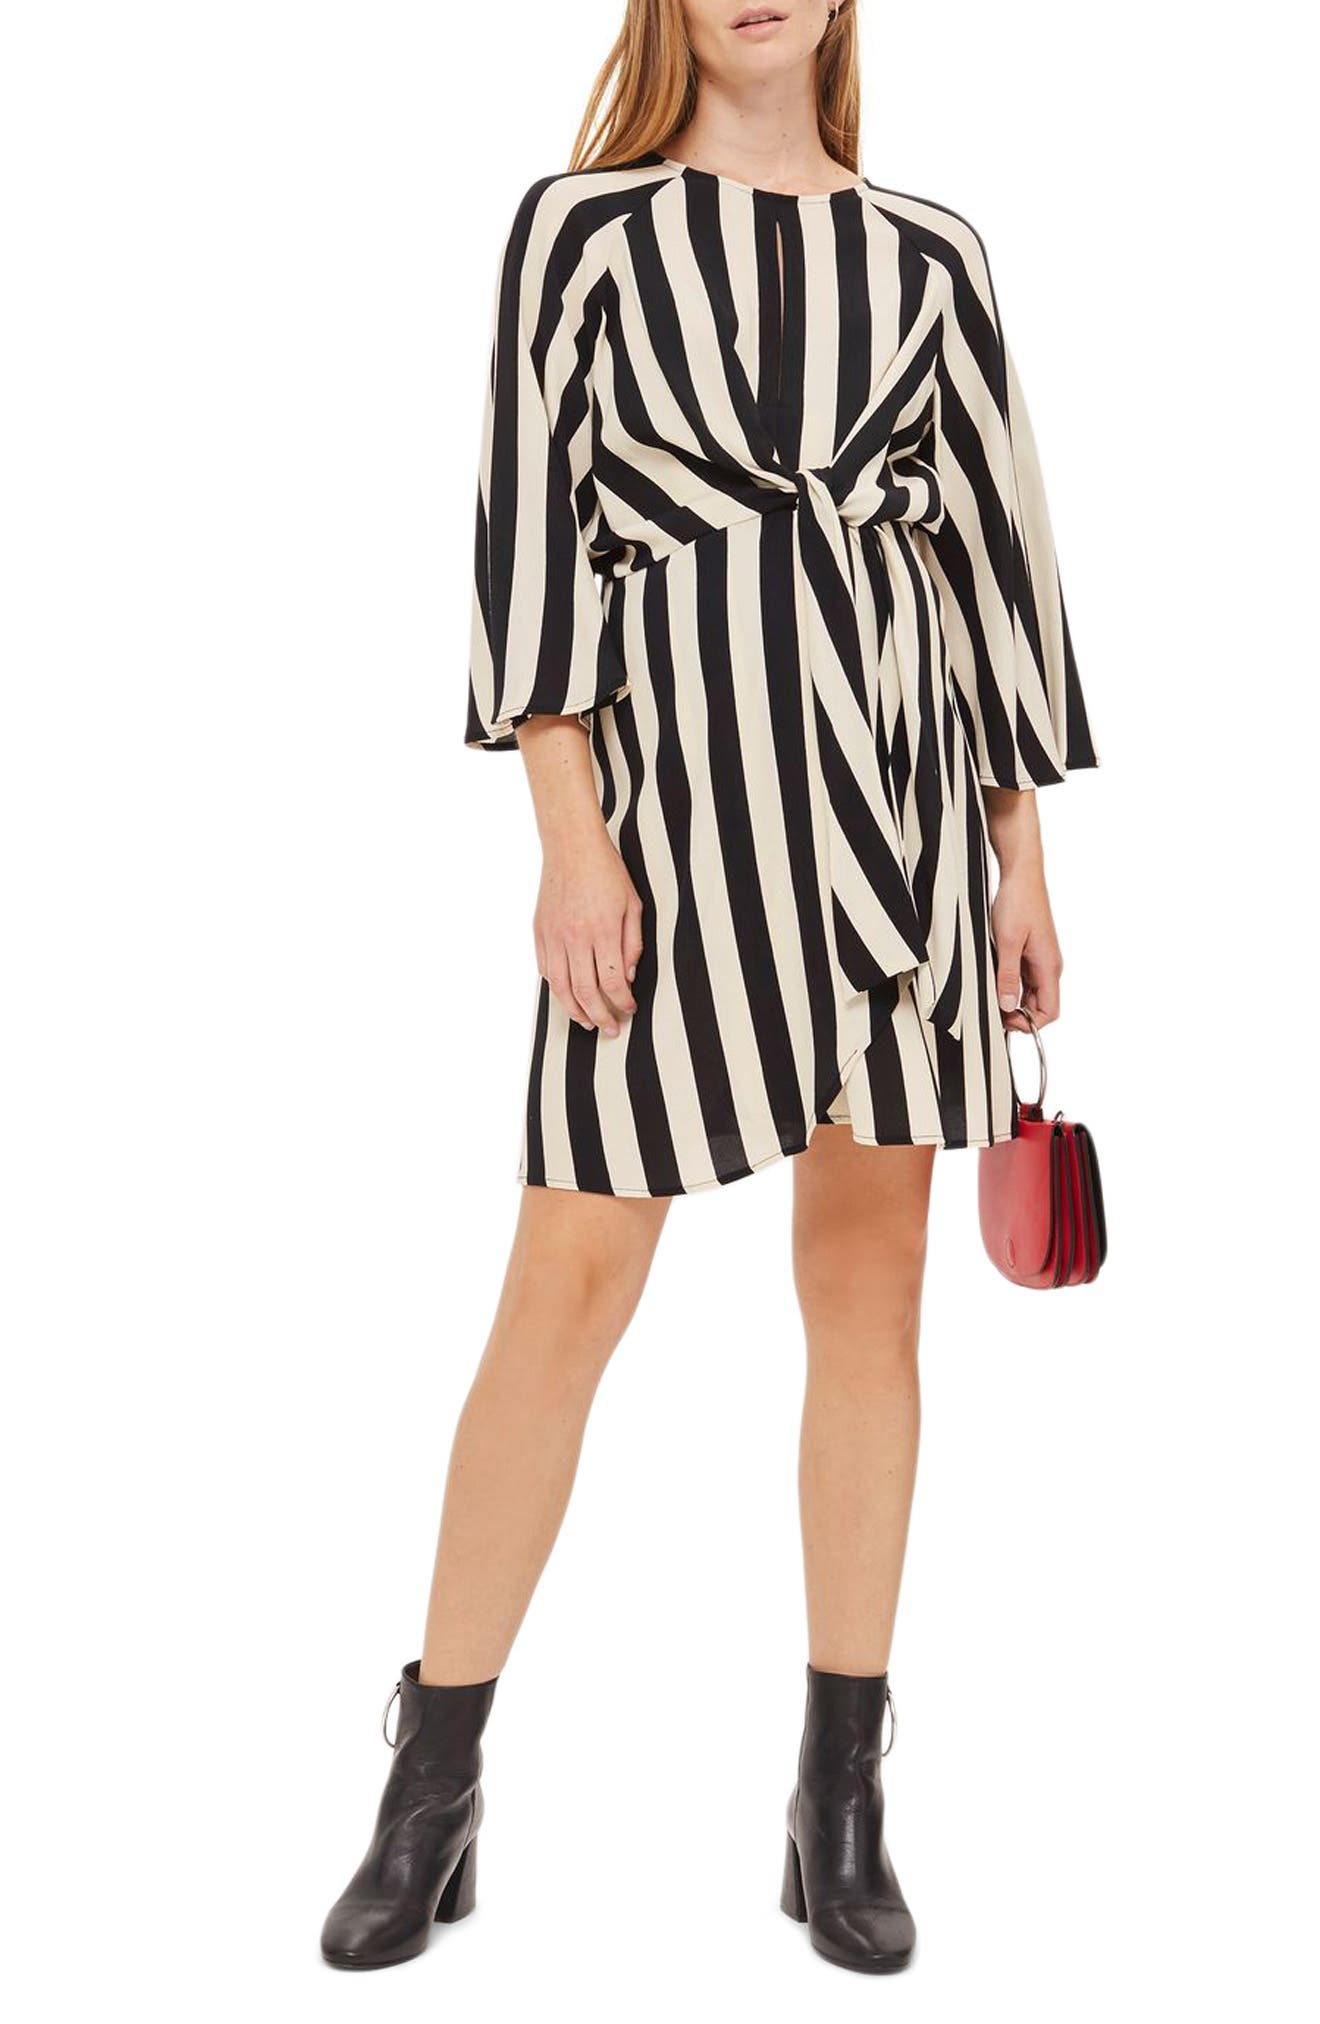 Alternate Image 1 Selected - Topshop Humbug Stripe Knot Maternity Dress